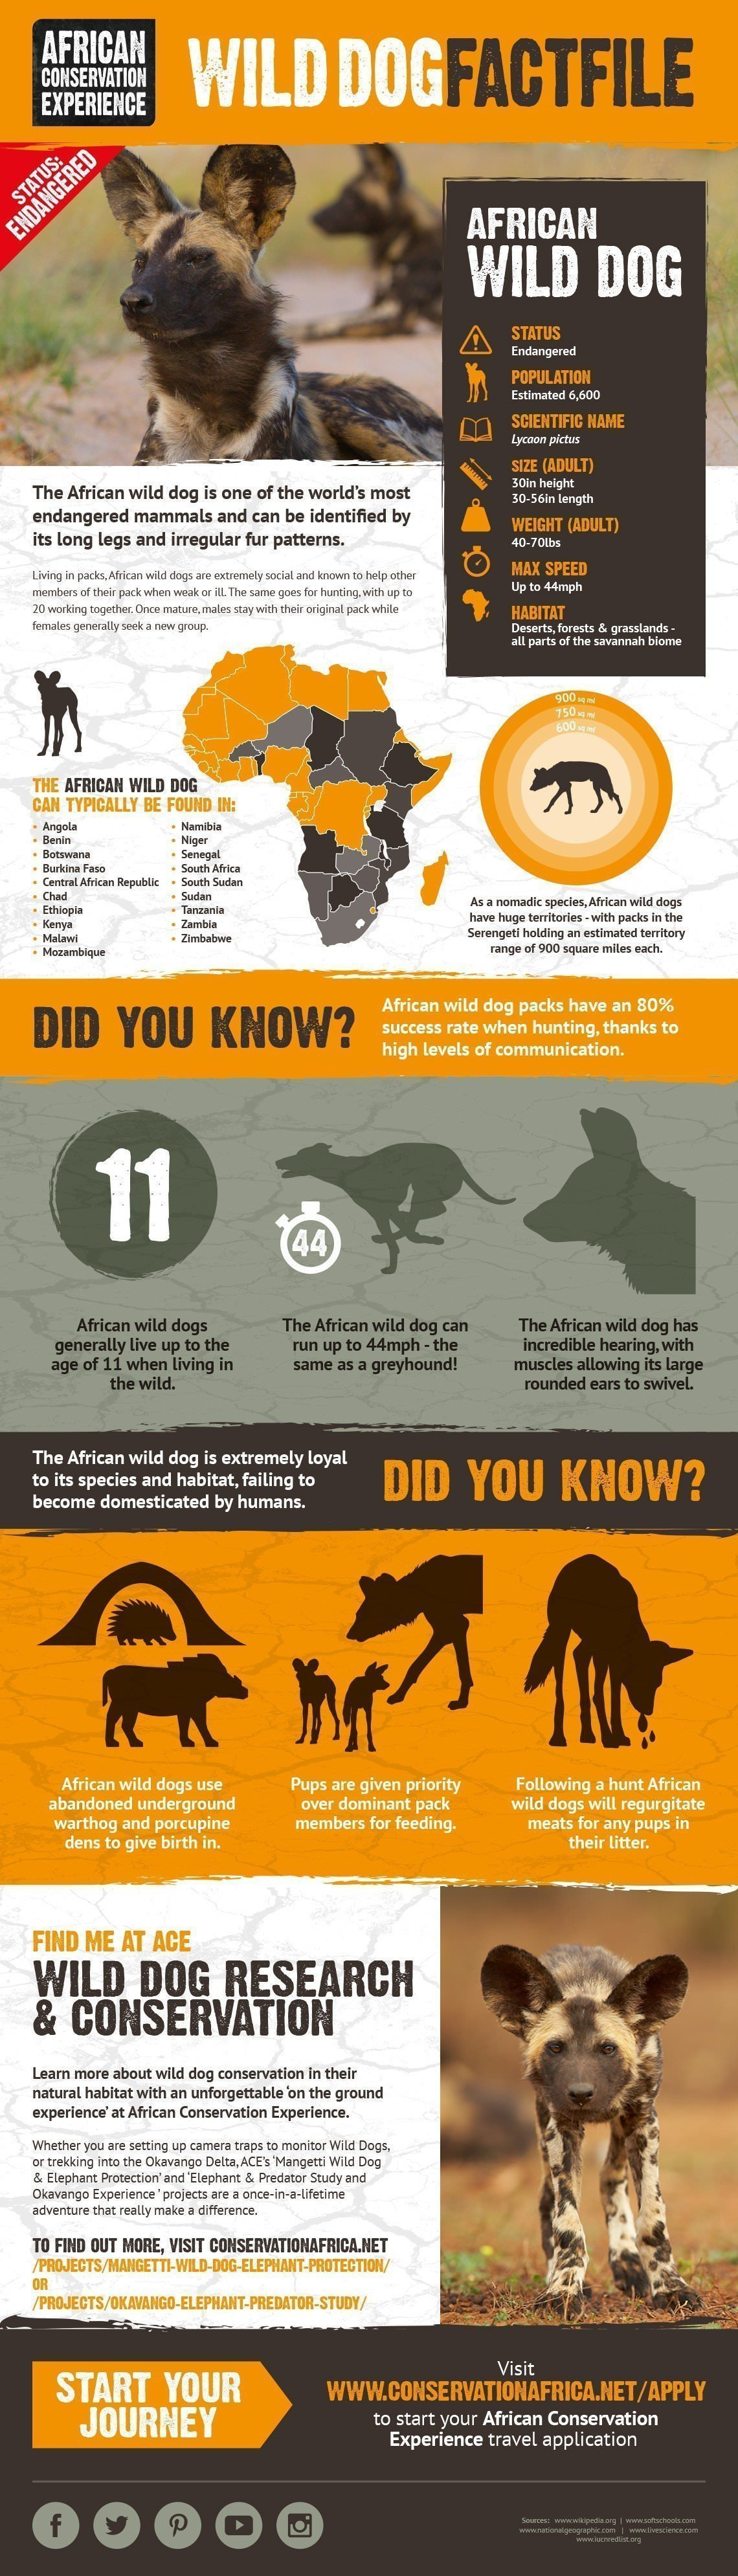 African wild dog facts infographic